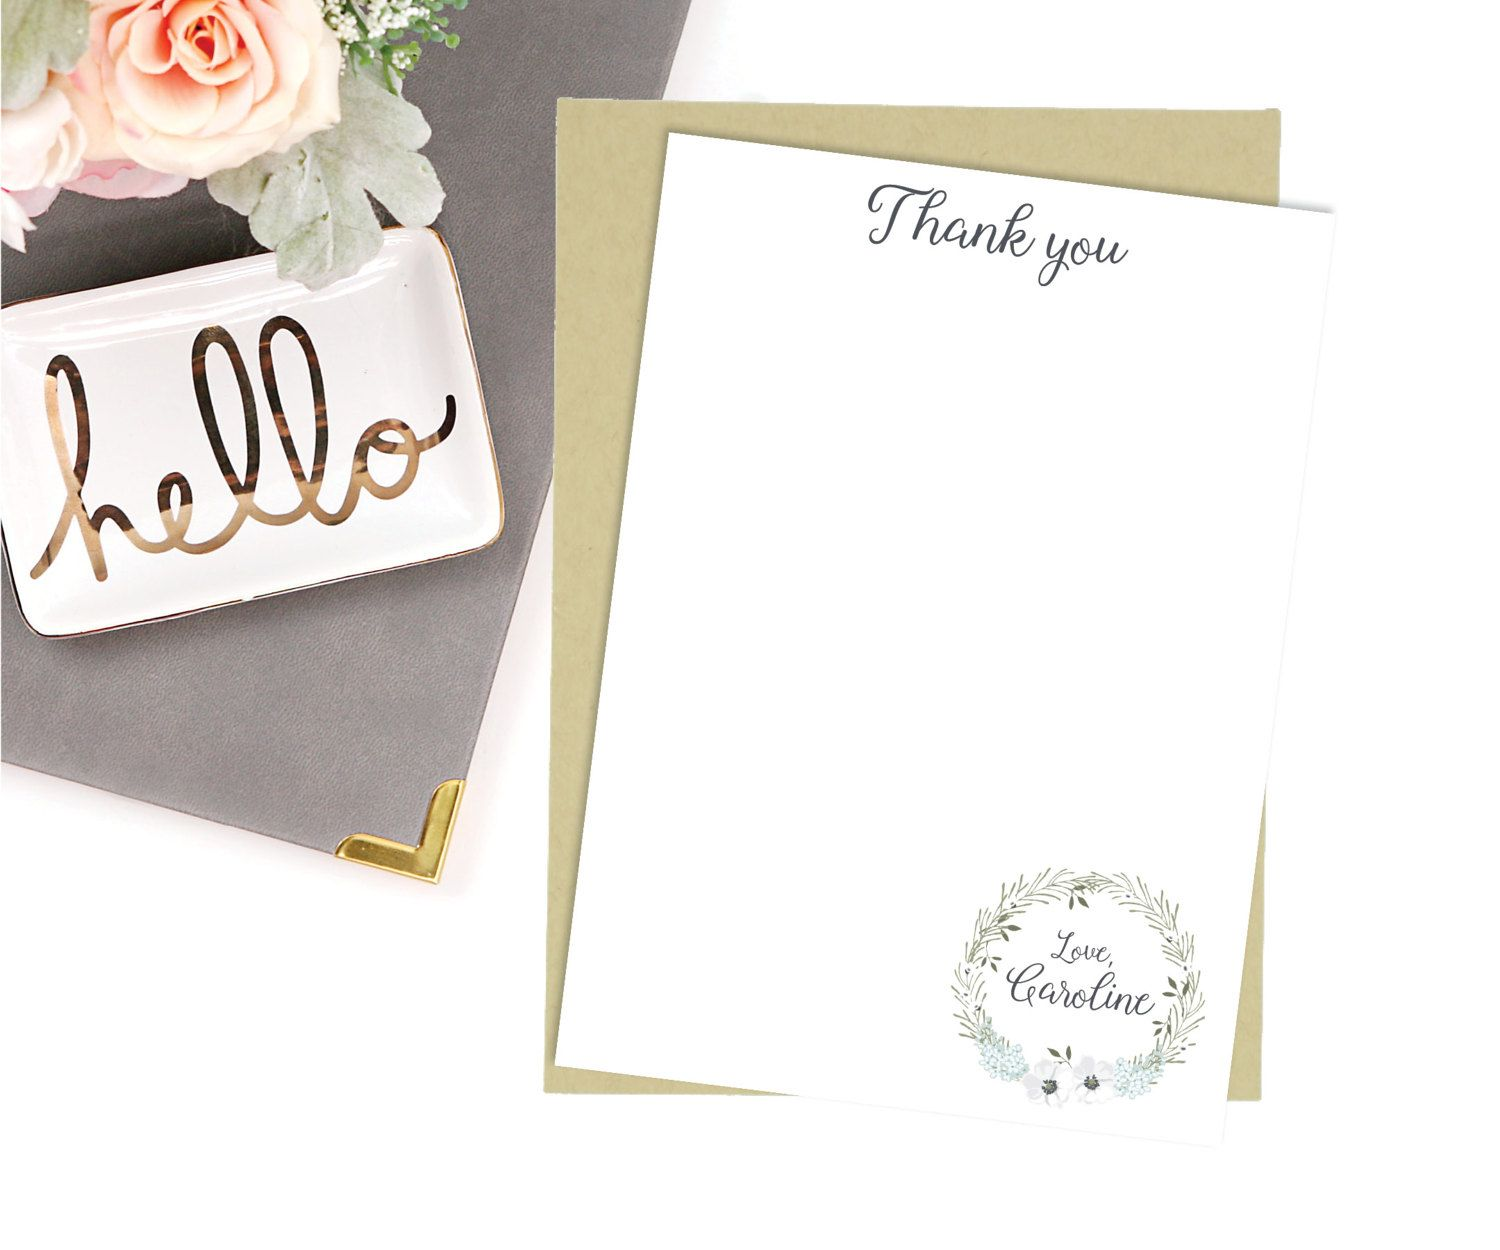 Thank you Stationery Note Cards-Personalized Stationery-Stationery ...